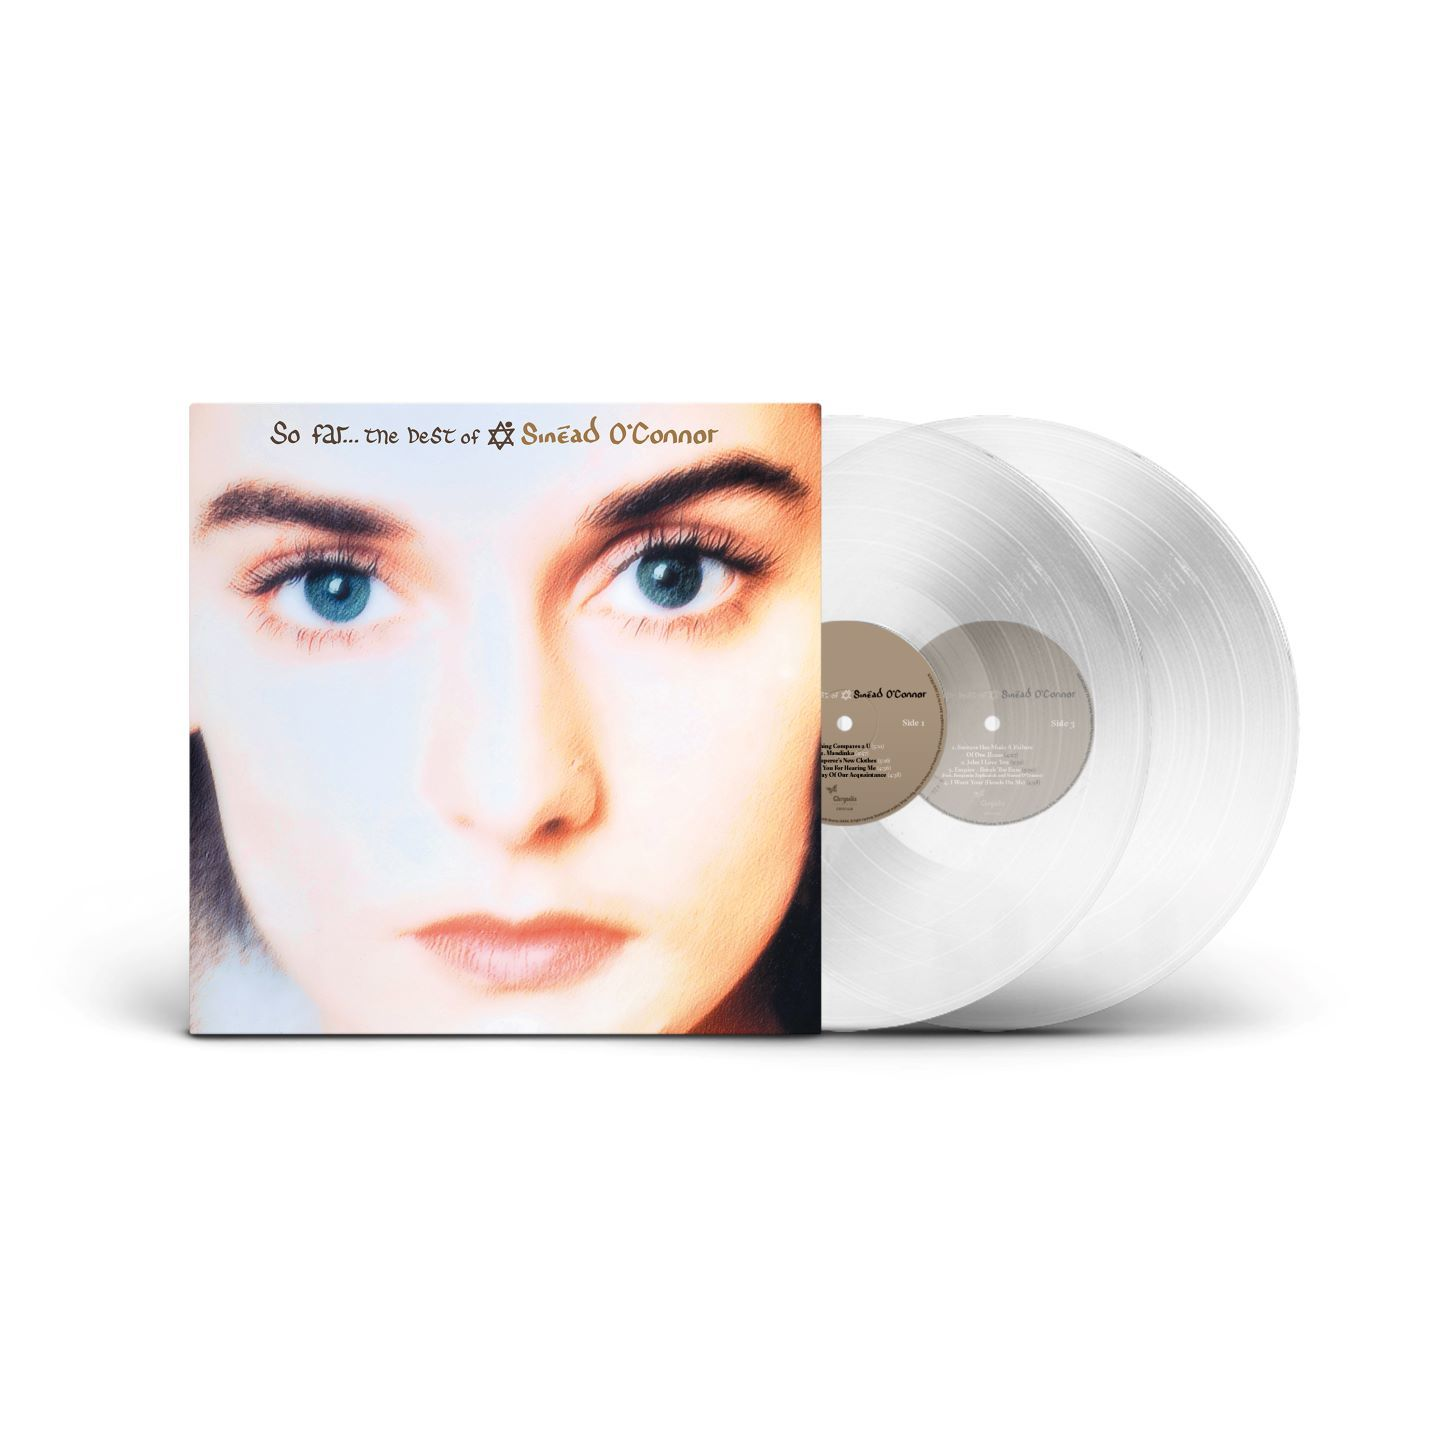 Sinead O'Connor - So Far...The Best Of Limited Edition Clear Vinyl